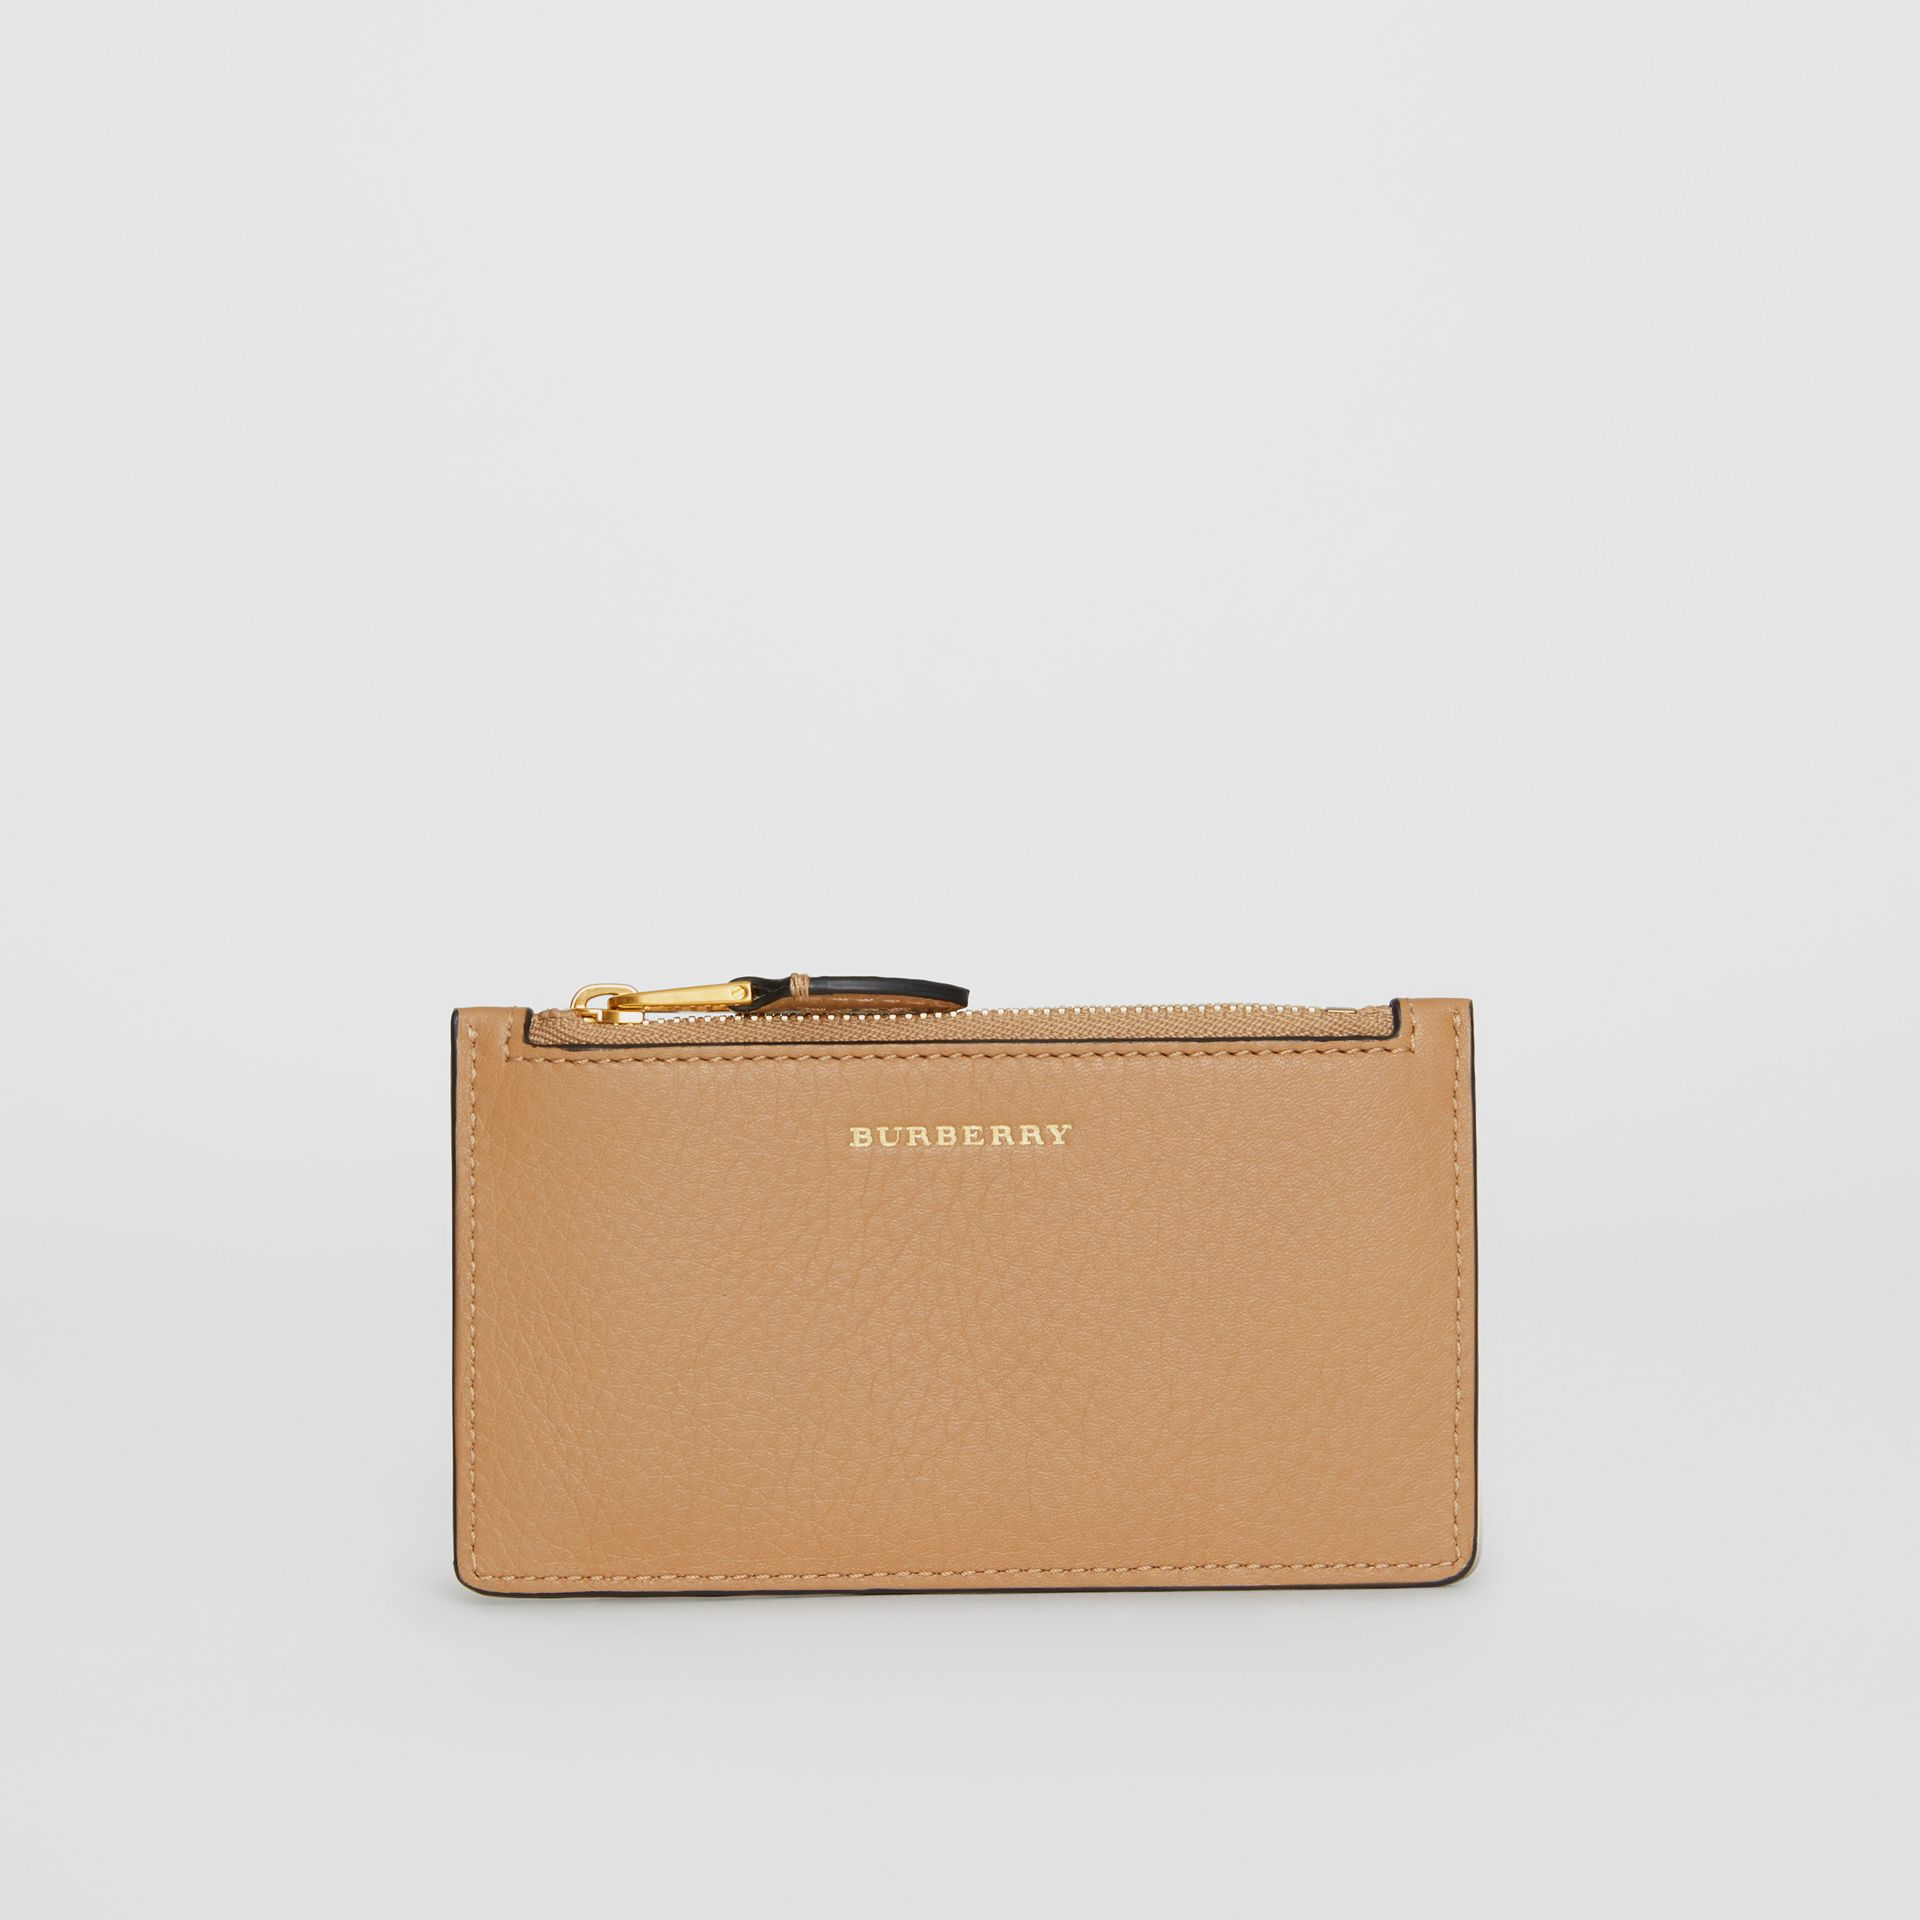 Two-tone Leather Card Case in Light Camel - Women | Burberry Canada - gallery image 2